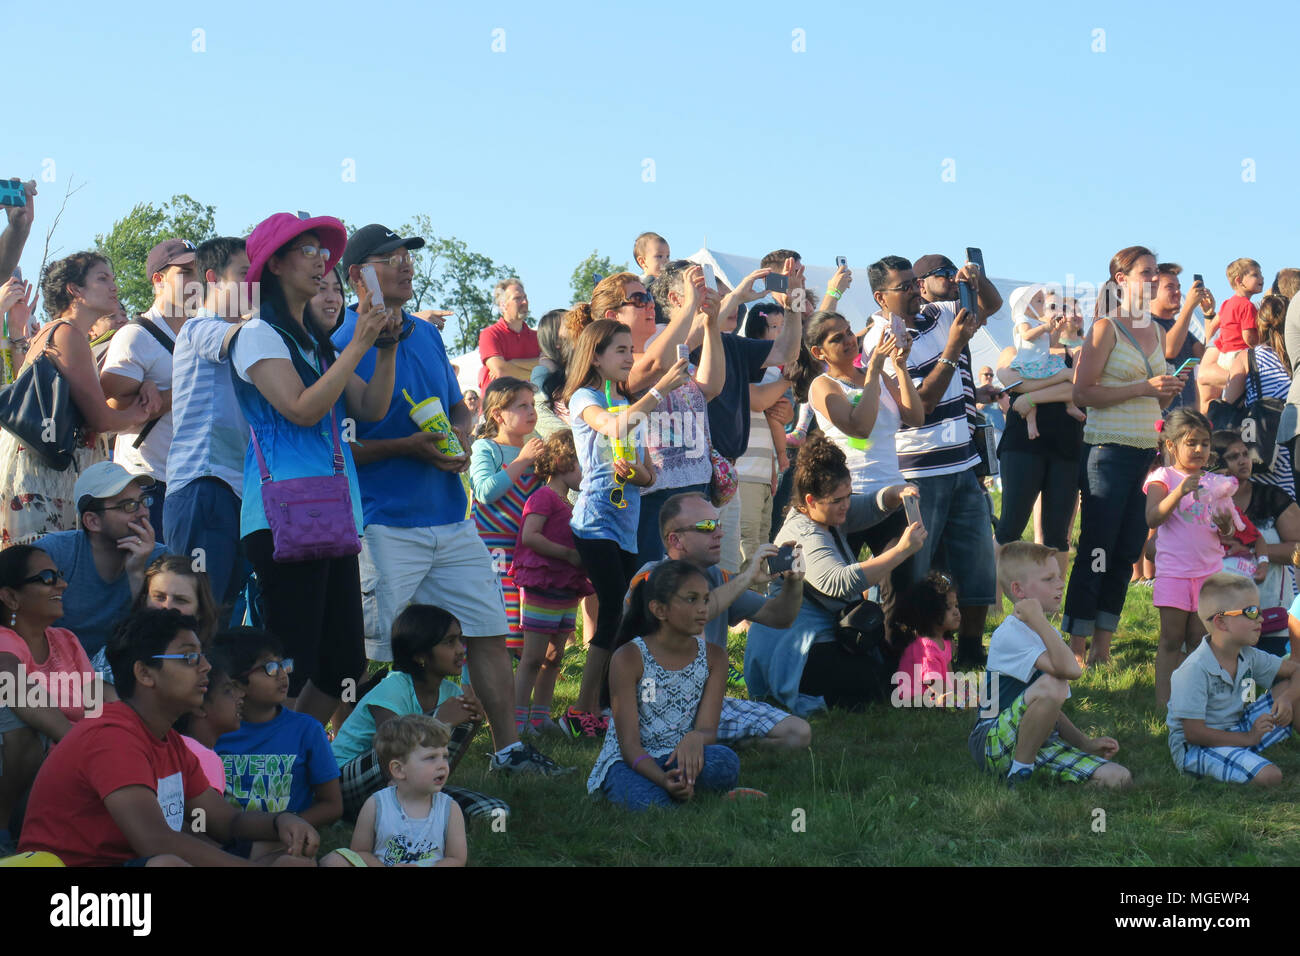 A crowd of onlookers photographing a balloon launch with a variety of handheld cameras,phones and tablets - Stock Image